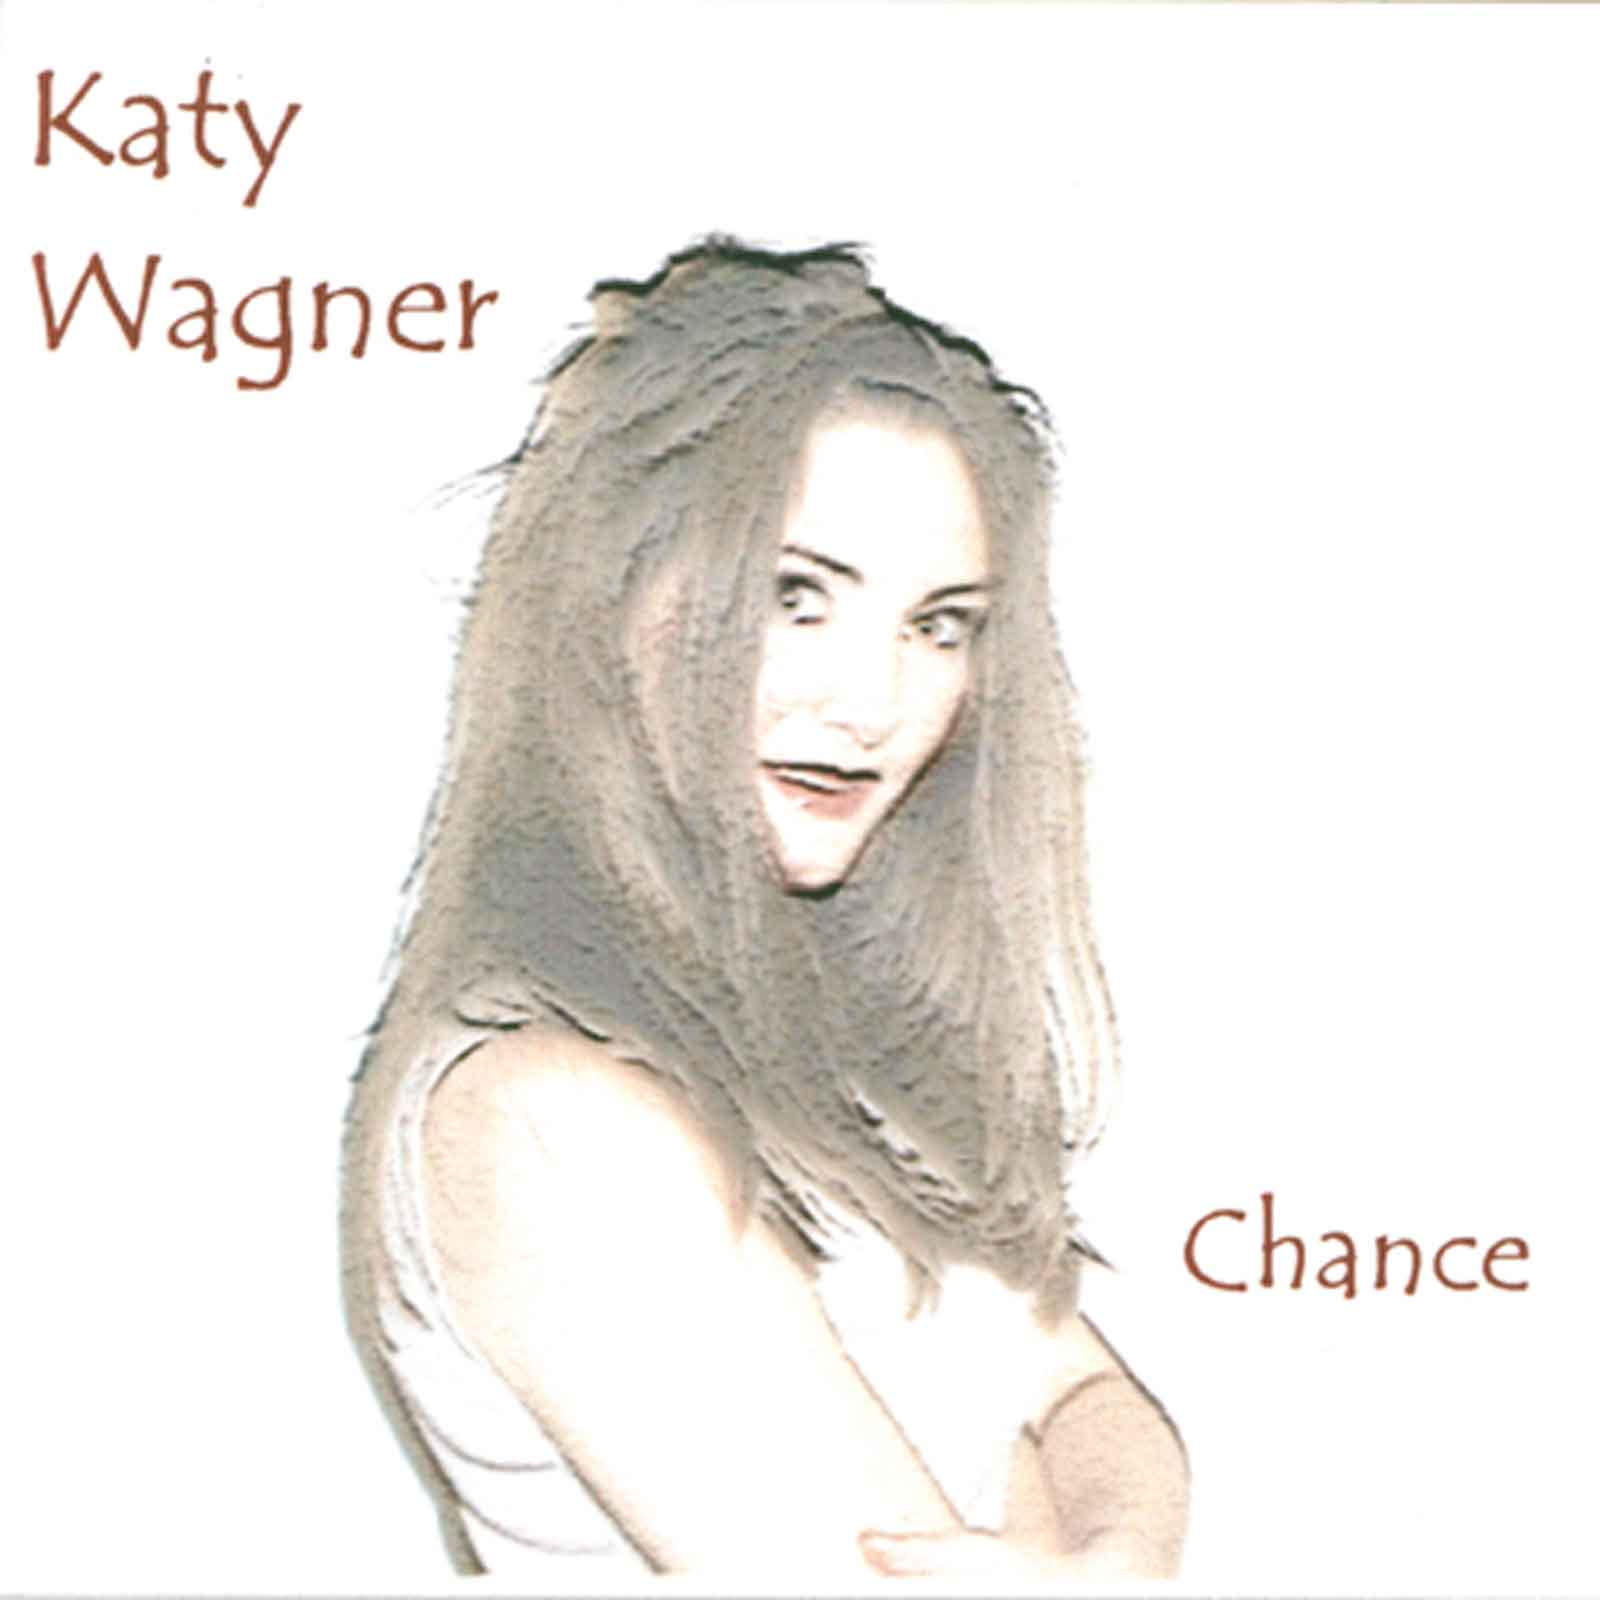 Katy Wagner - Chance - 1998